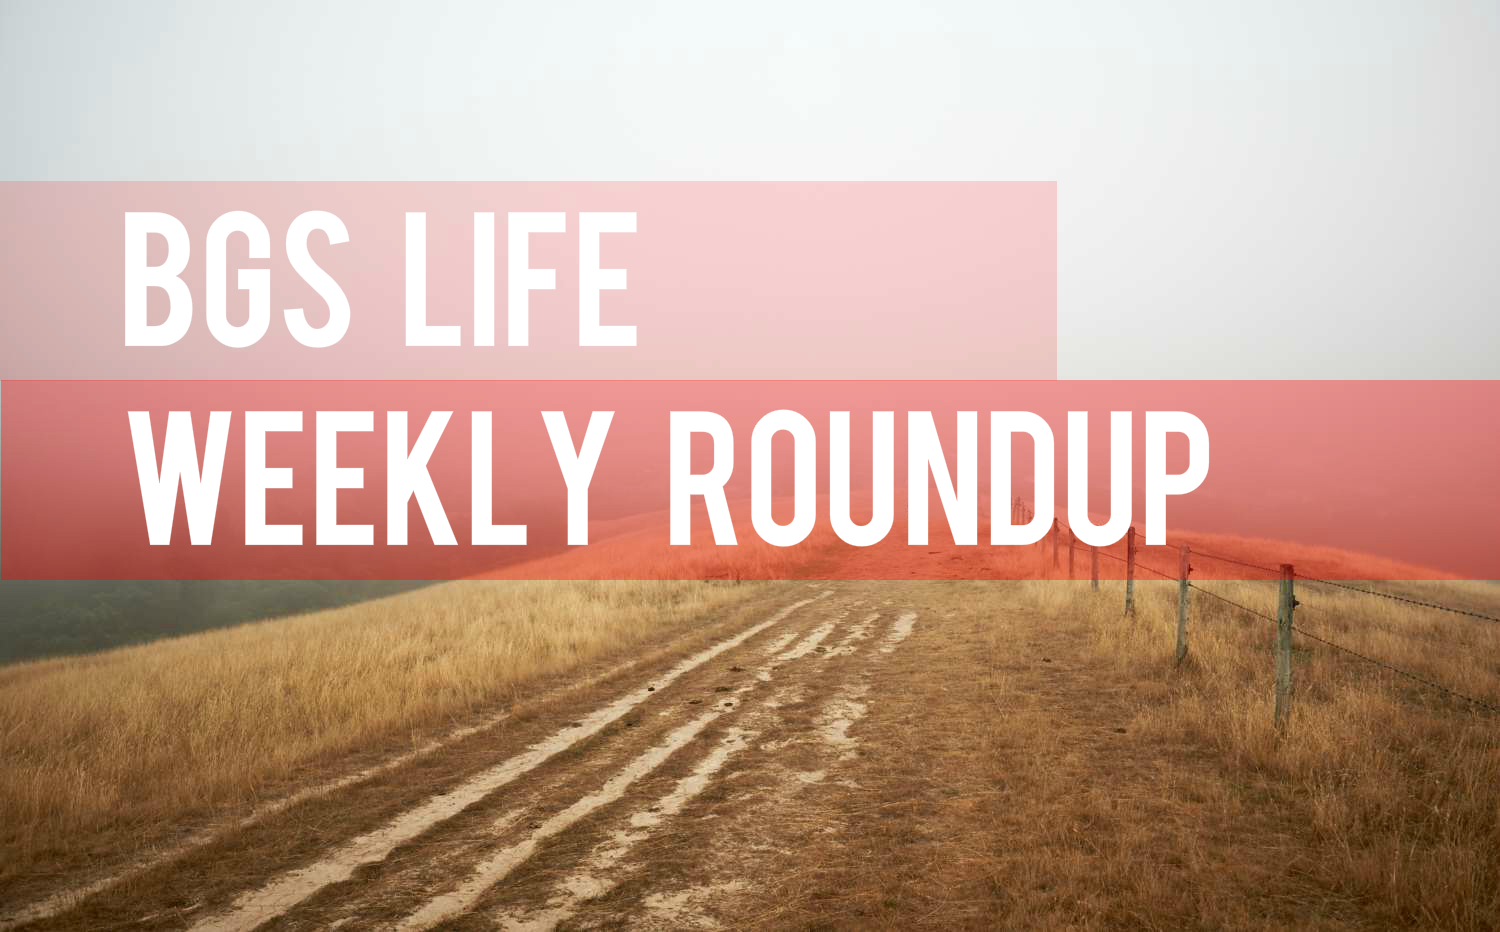 The BGS Life Weekly Roundup: Thanksgiving Feasts, Custom Holiday Gifts, Icelandic Rescuers and More